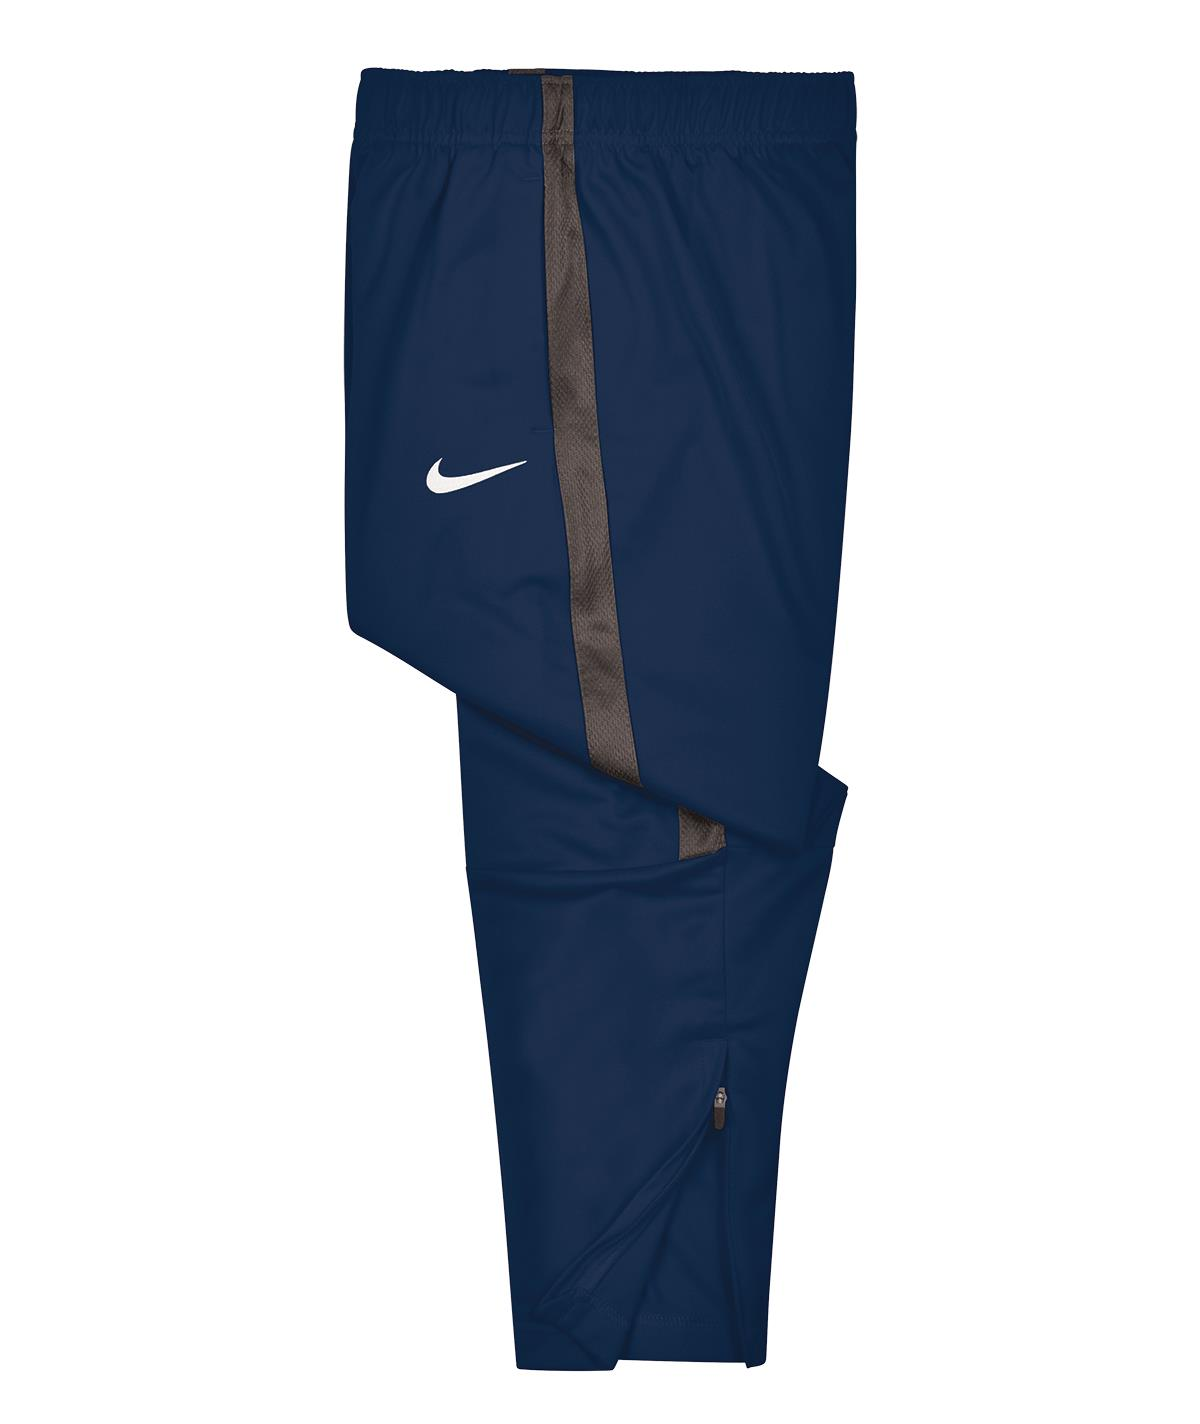 Nike Women's Epic Training Pant